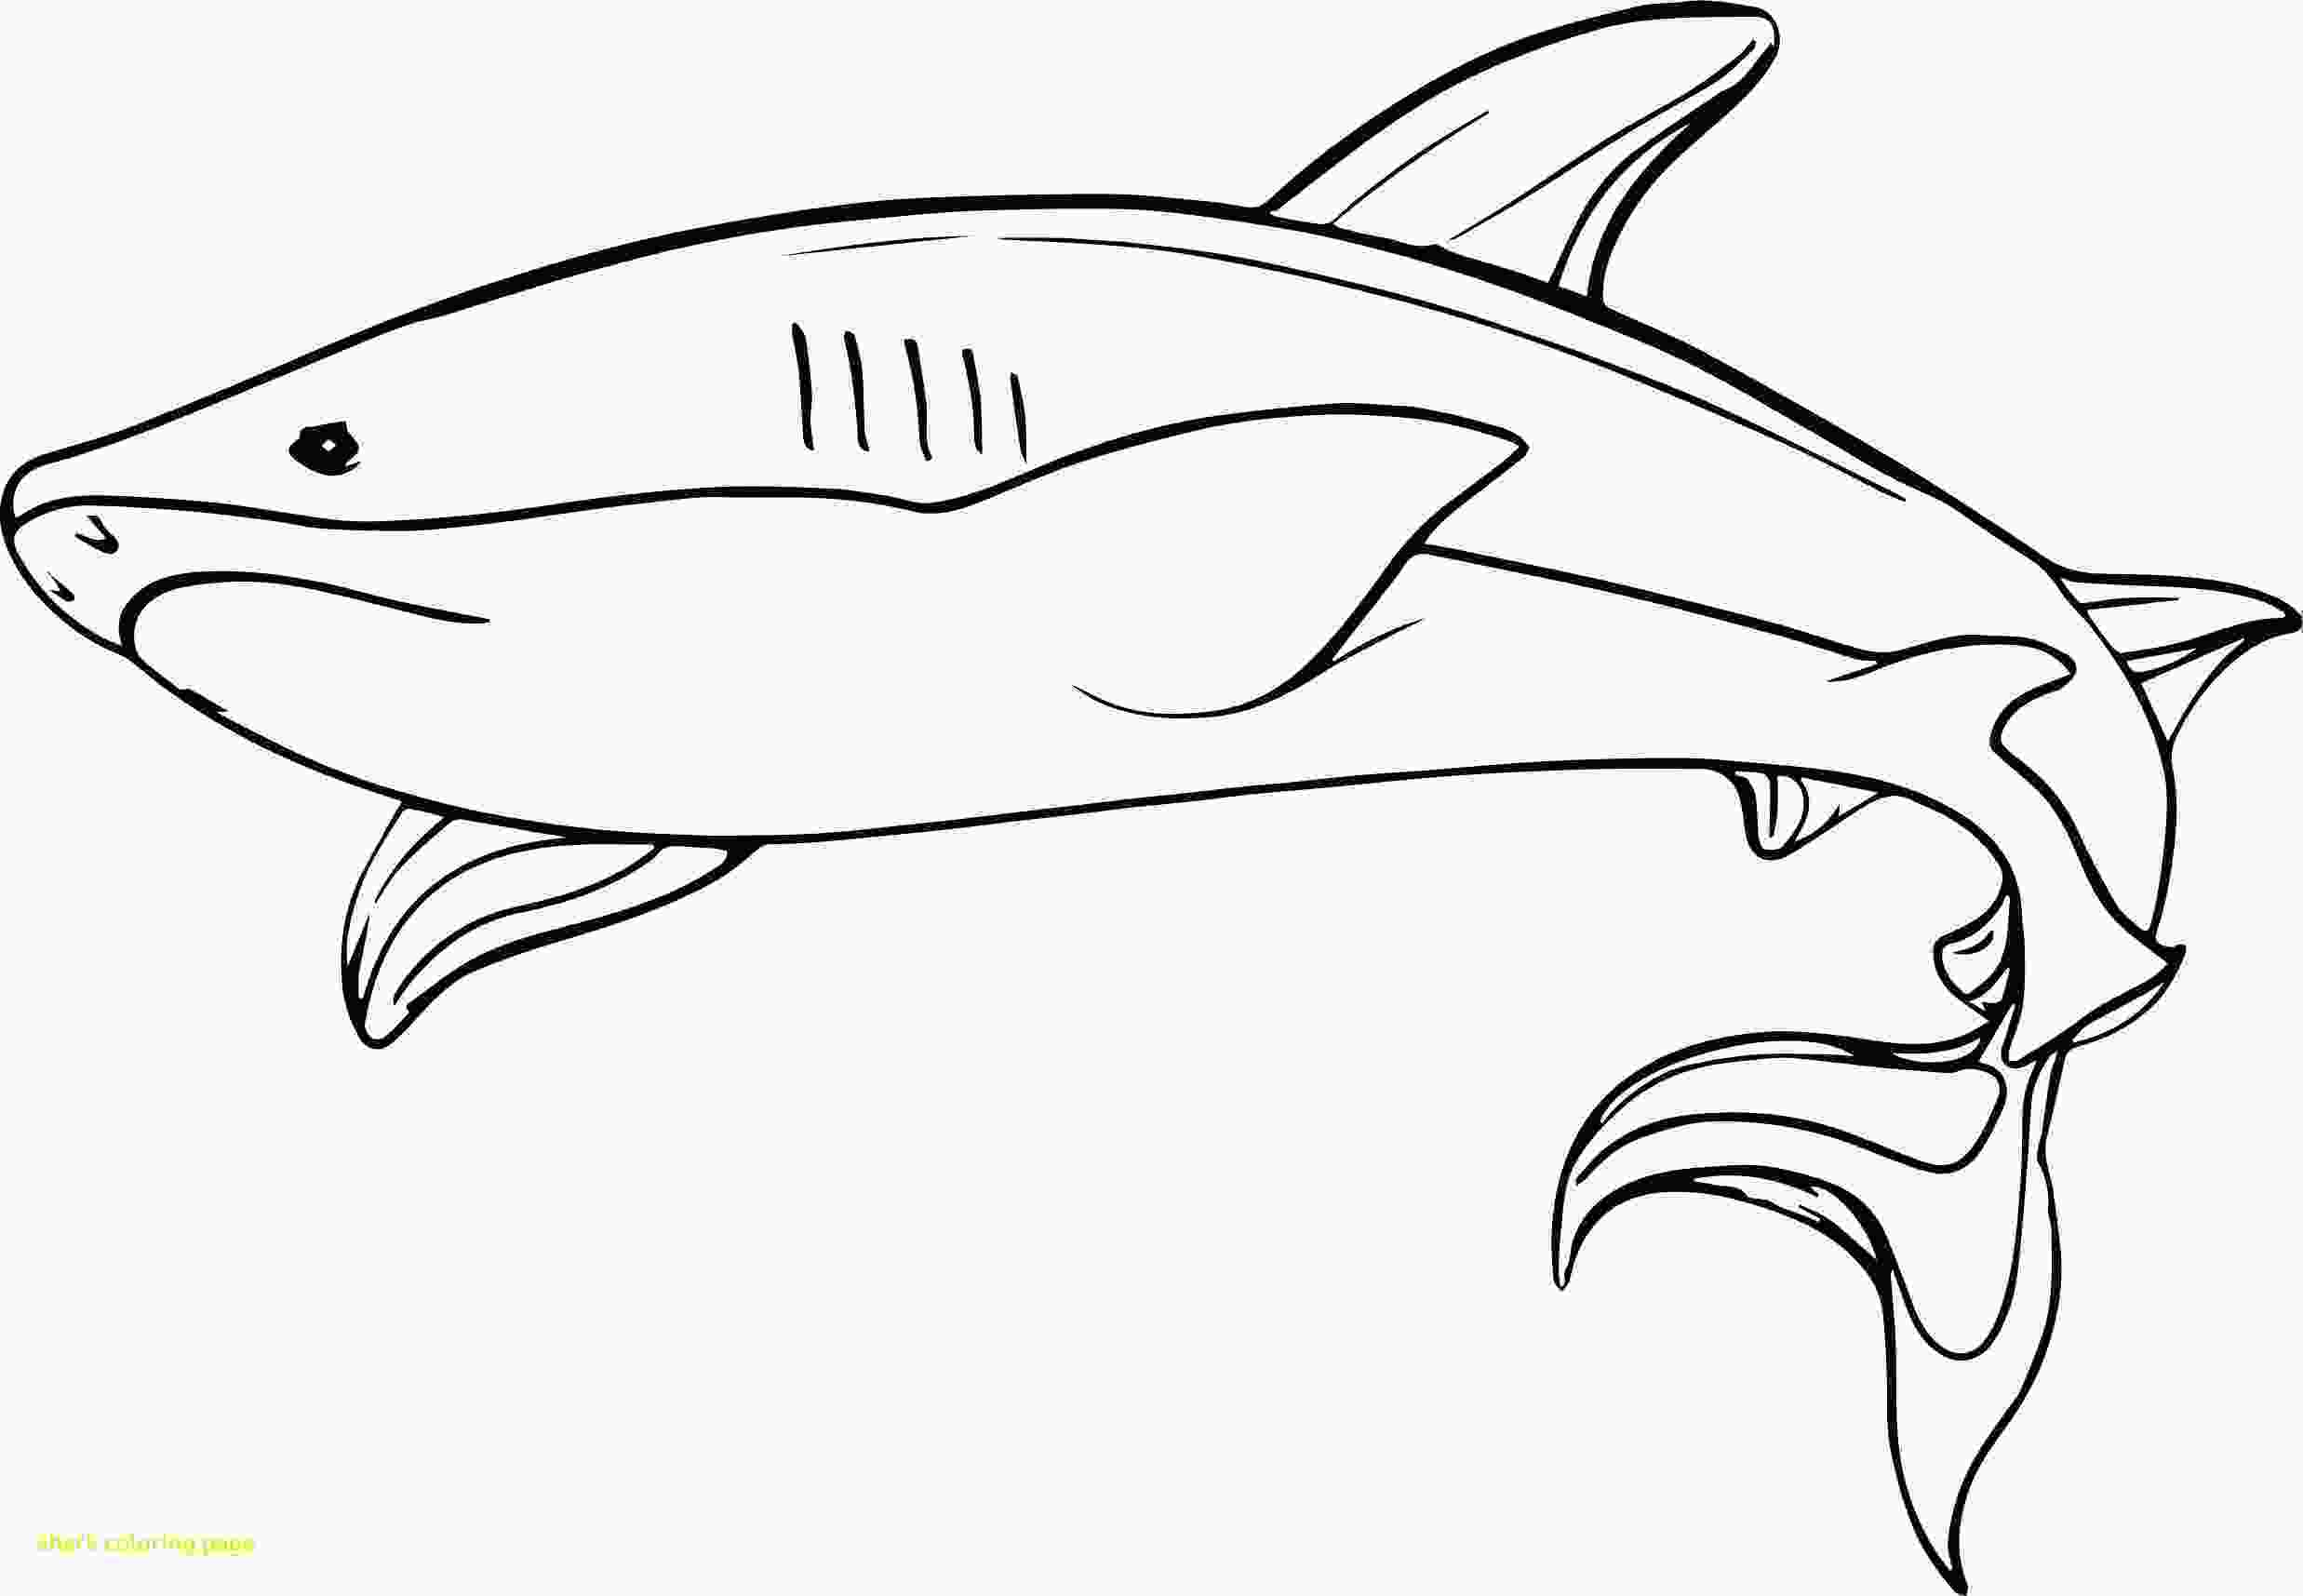 mako shark coloring page spectacular printable coloring pages for kids shark